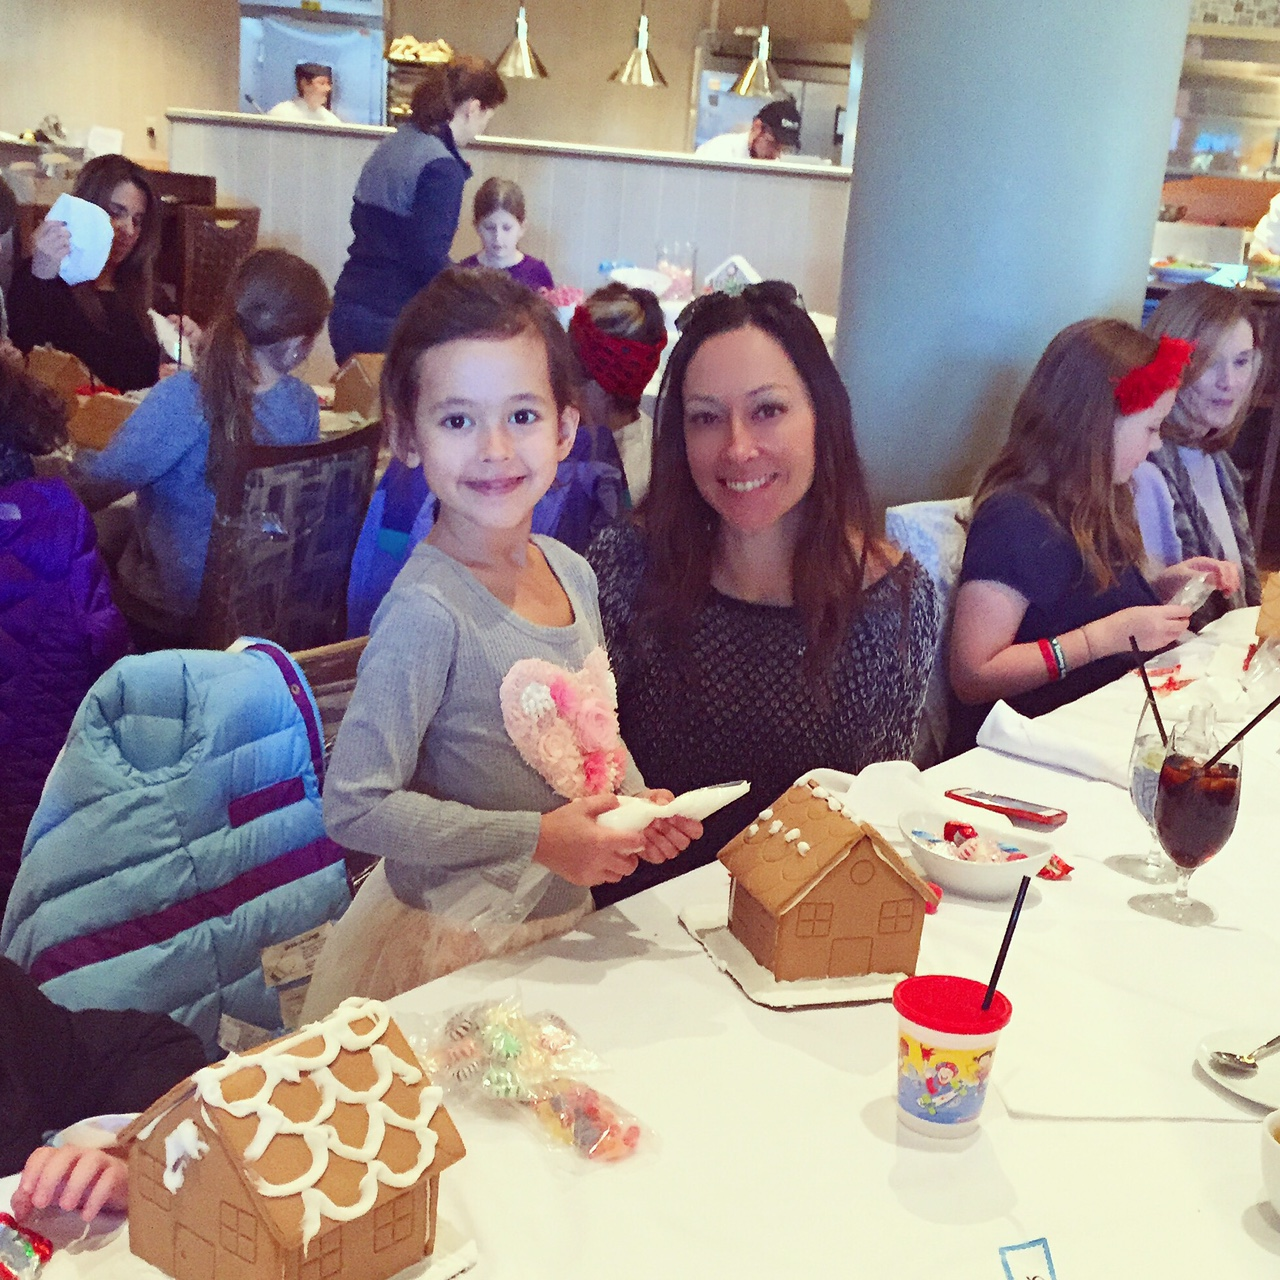 Jessica with her daughter, Chloe